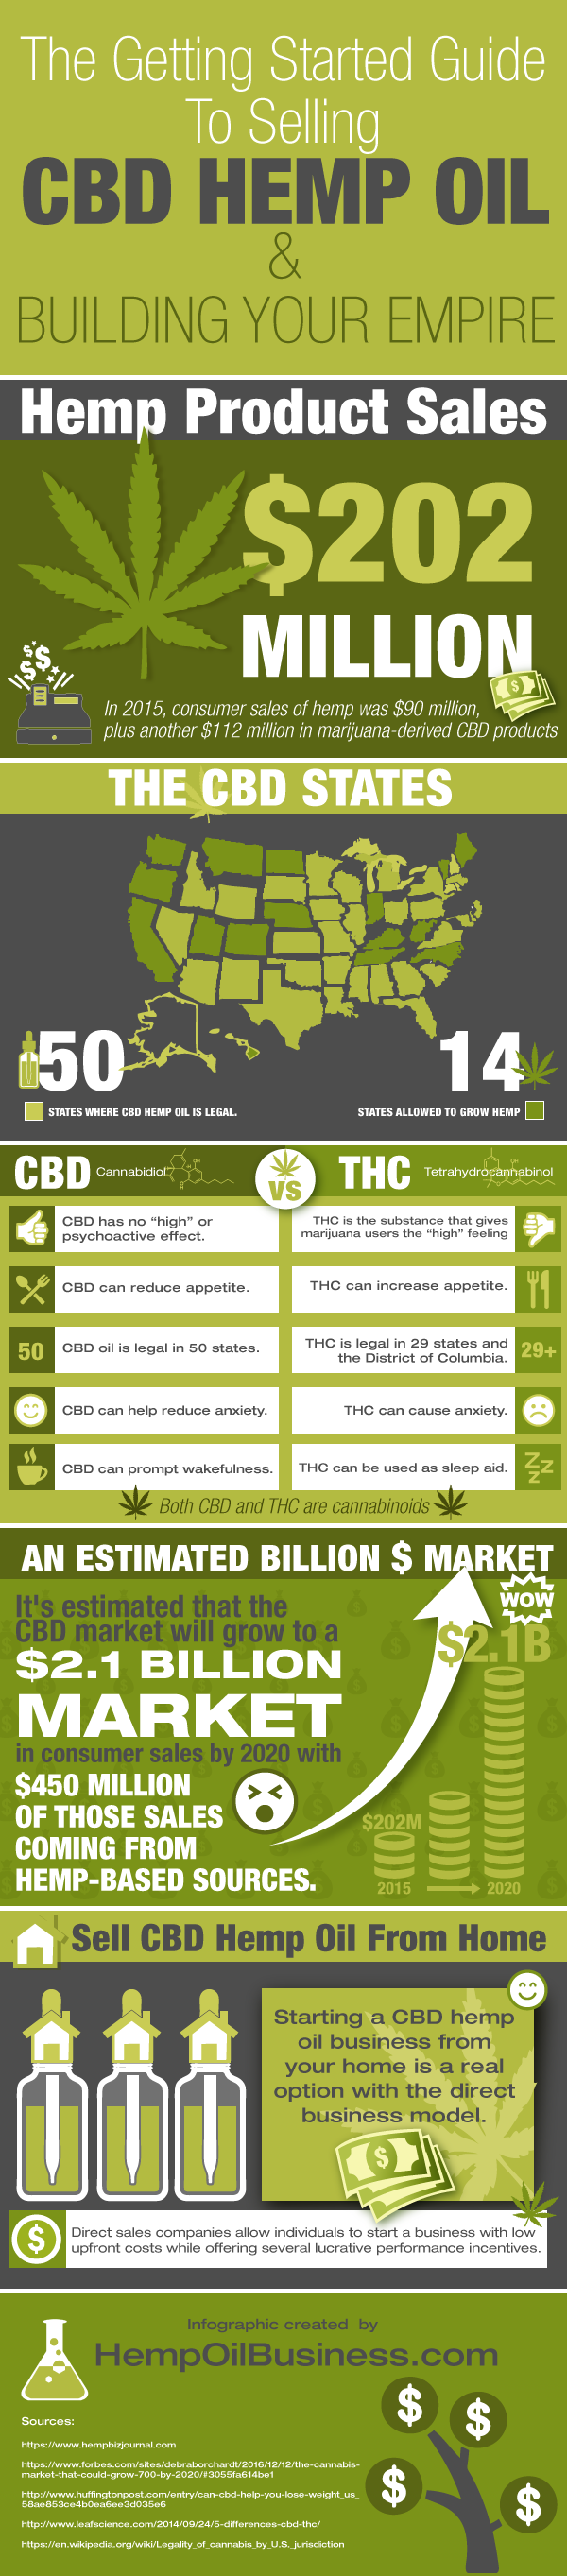 Getting Started Guide to Selling CBD Hemp Oil